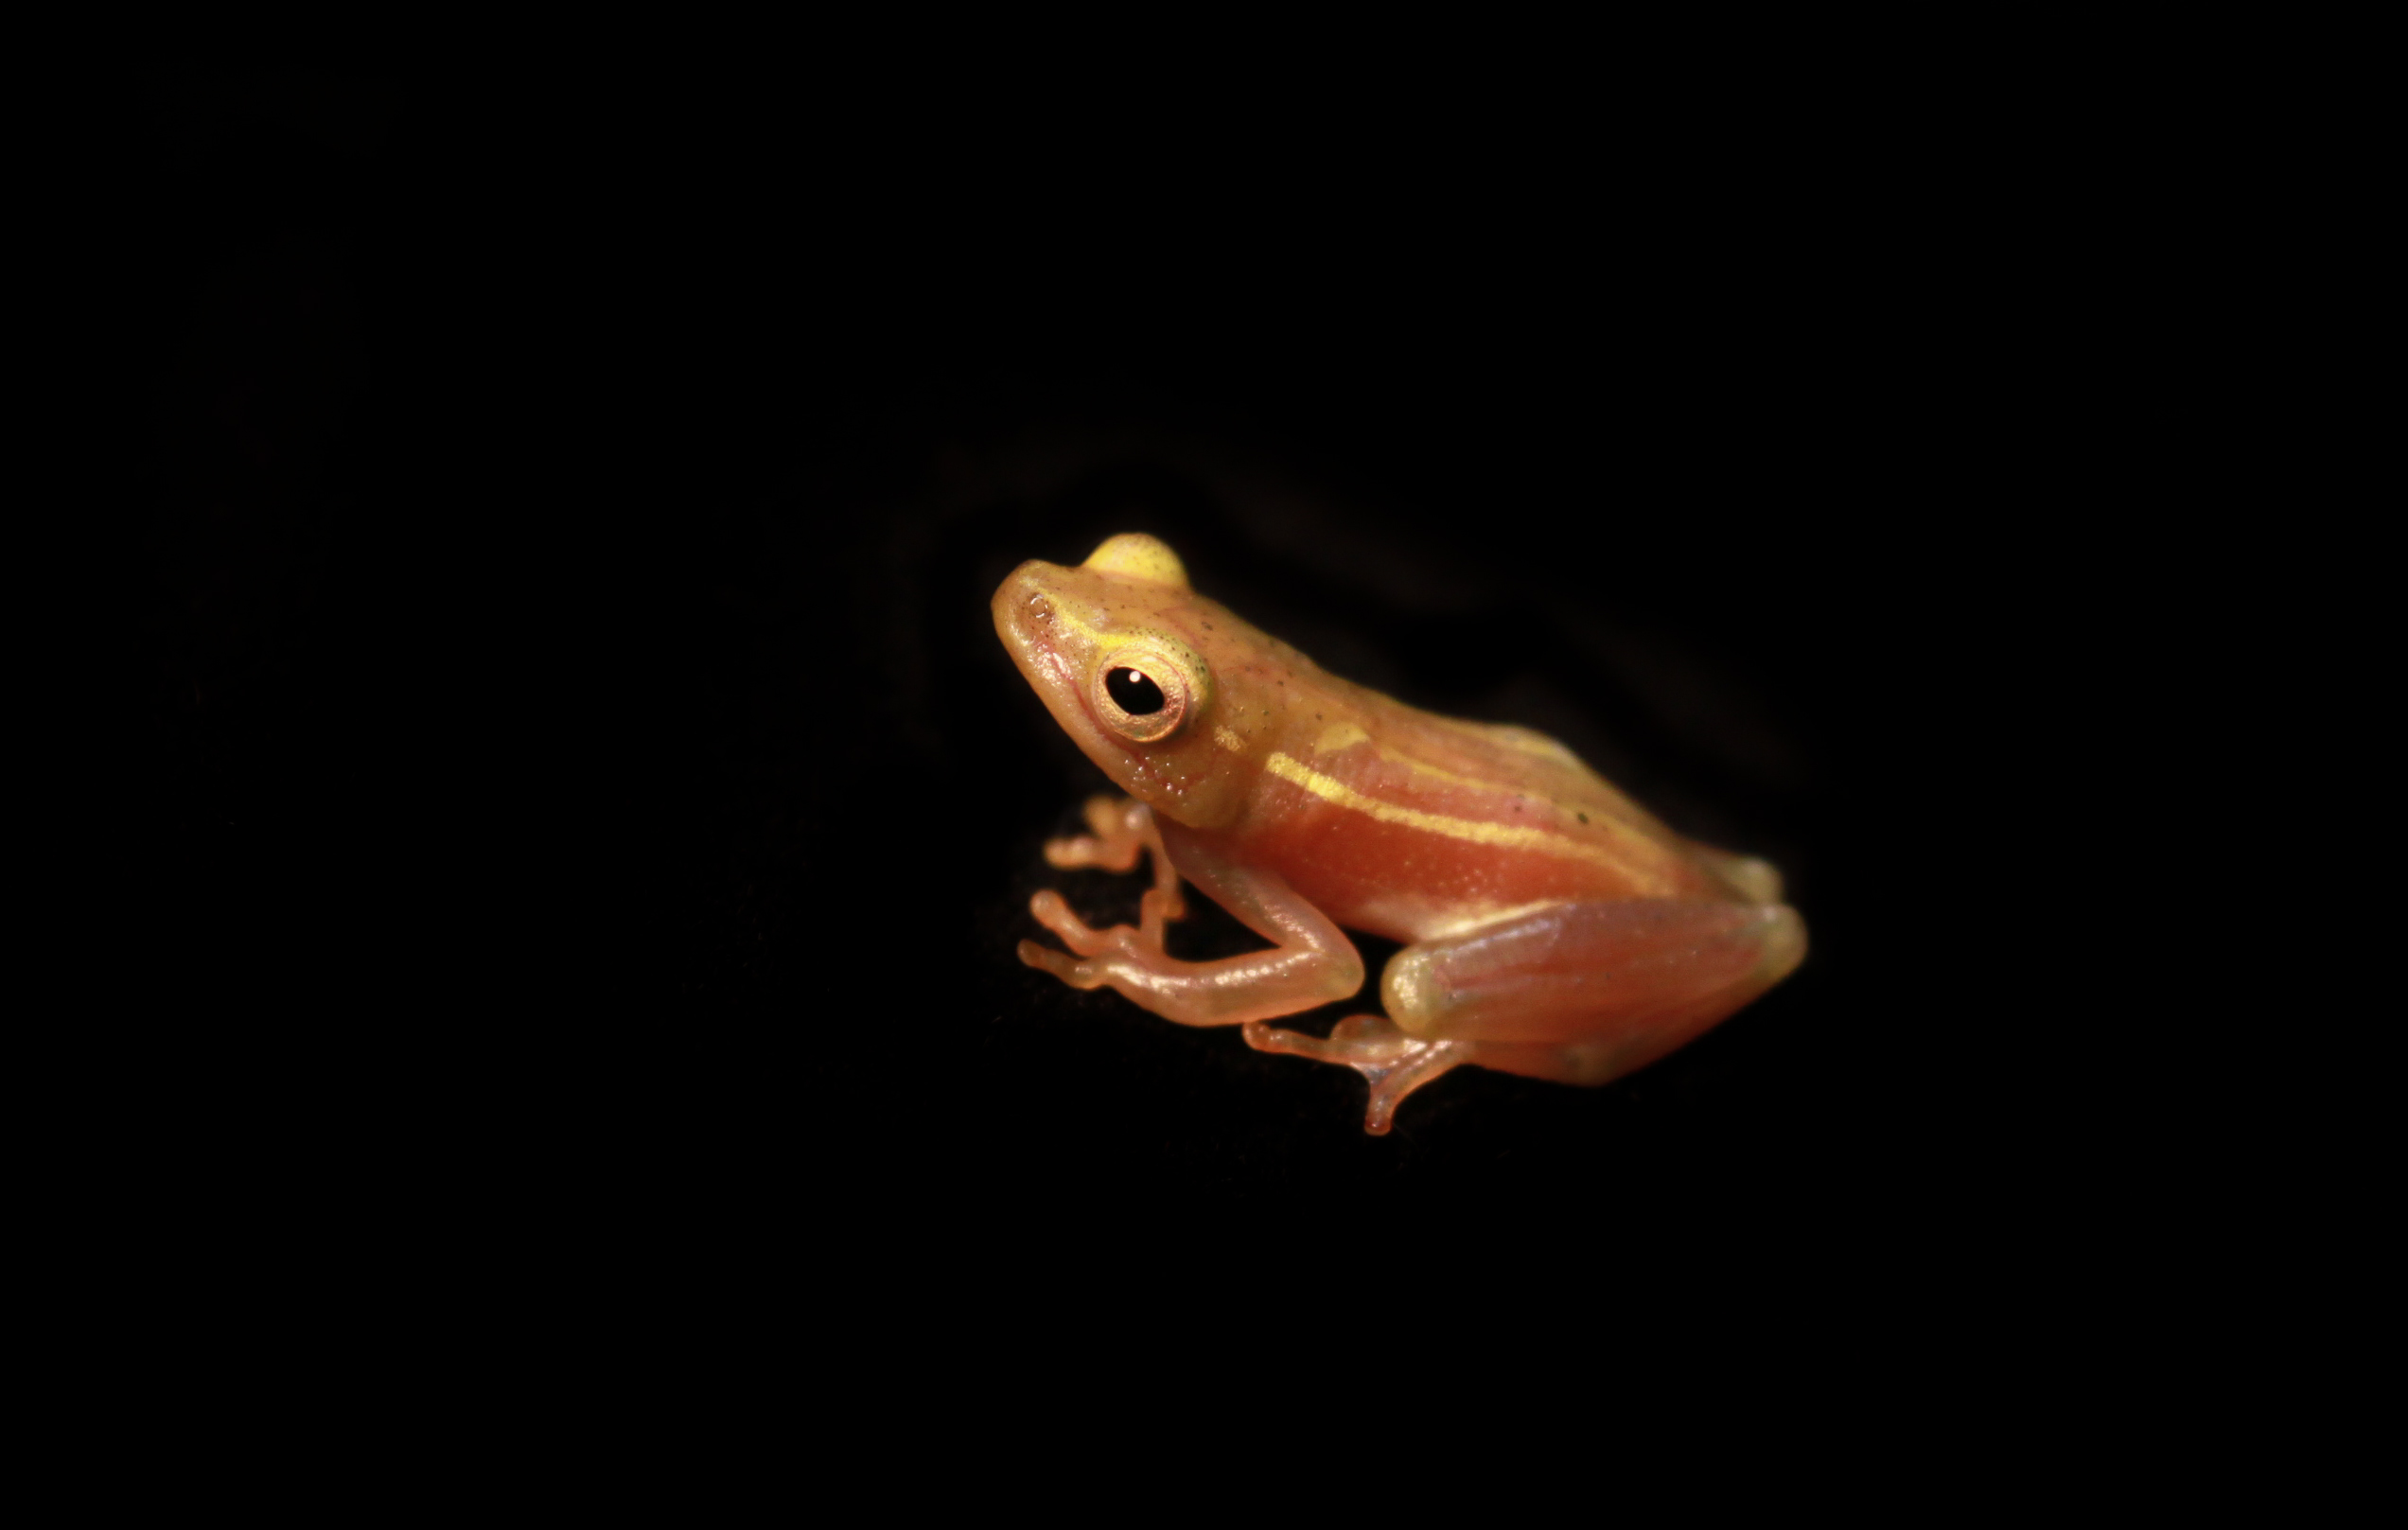 Image of long reed frog